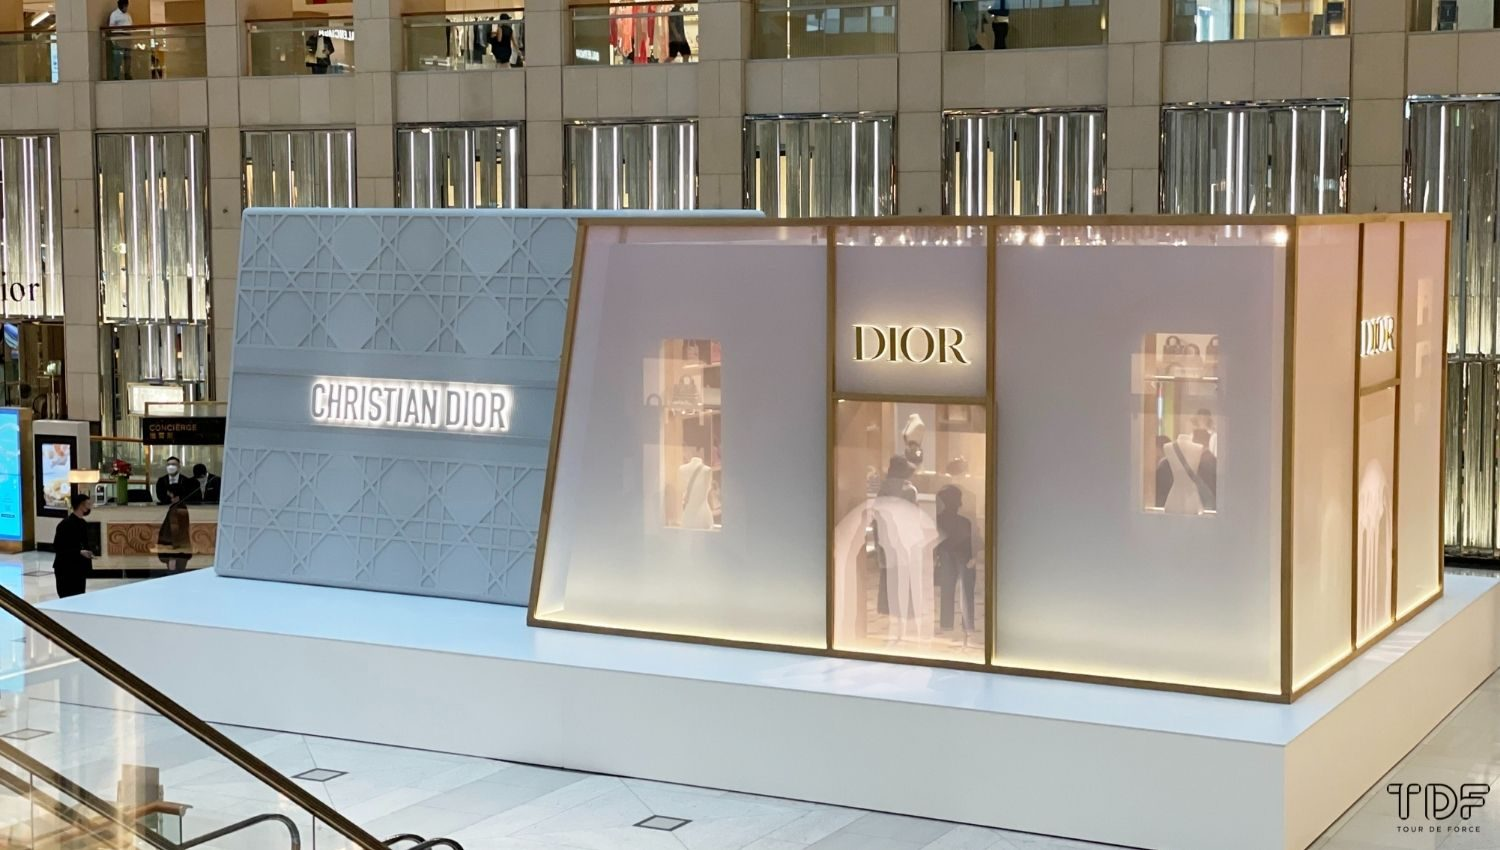 retailtainment, pop-up stores, physical stores, TDF visual merchandising